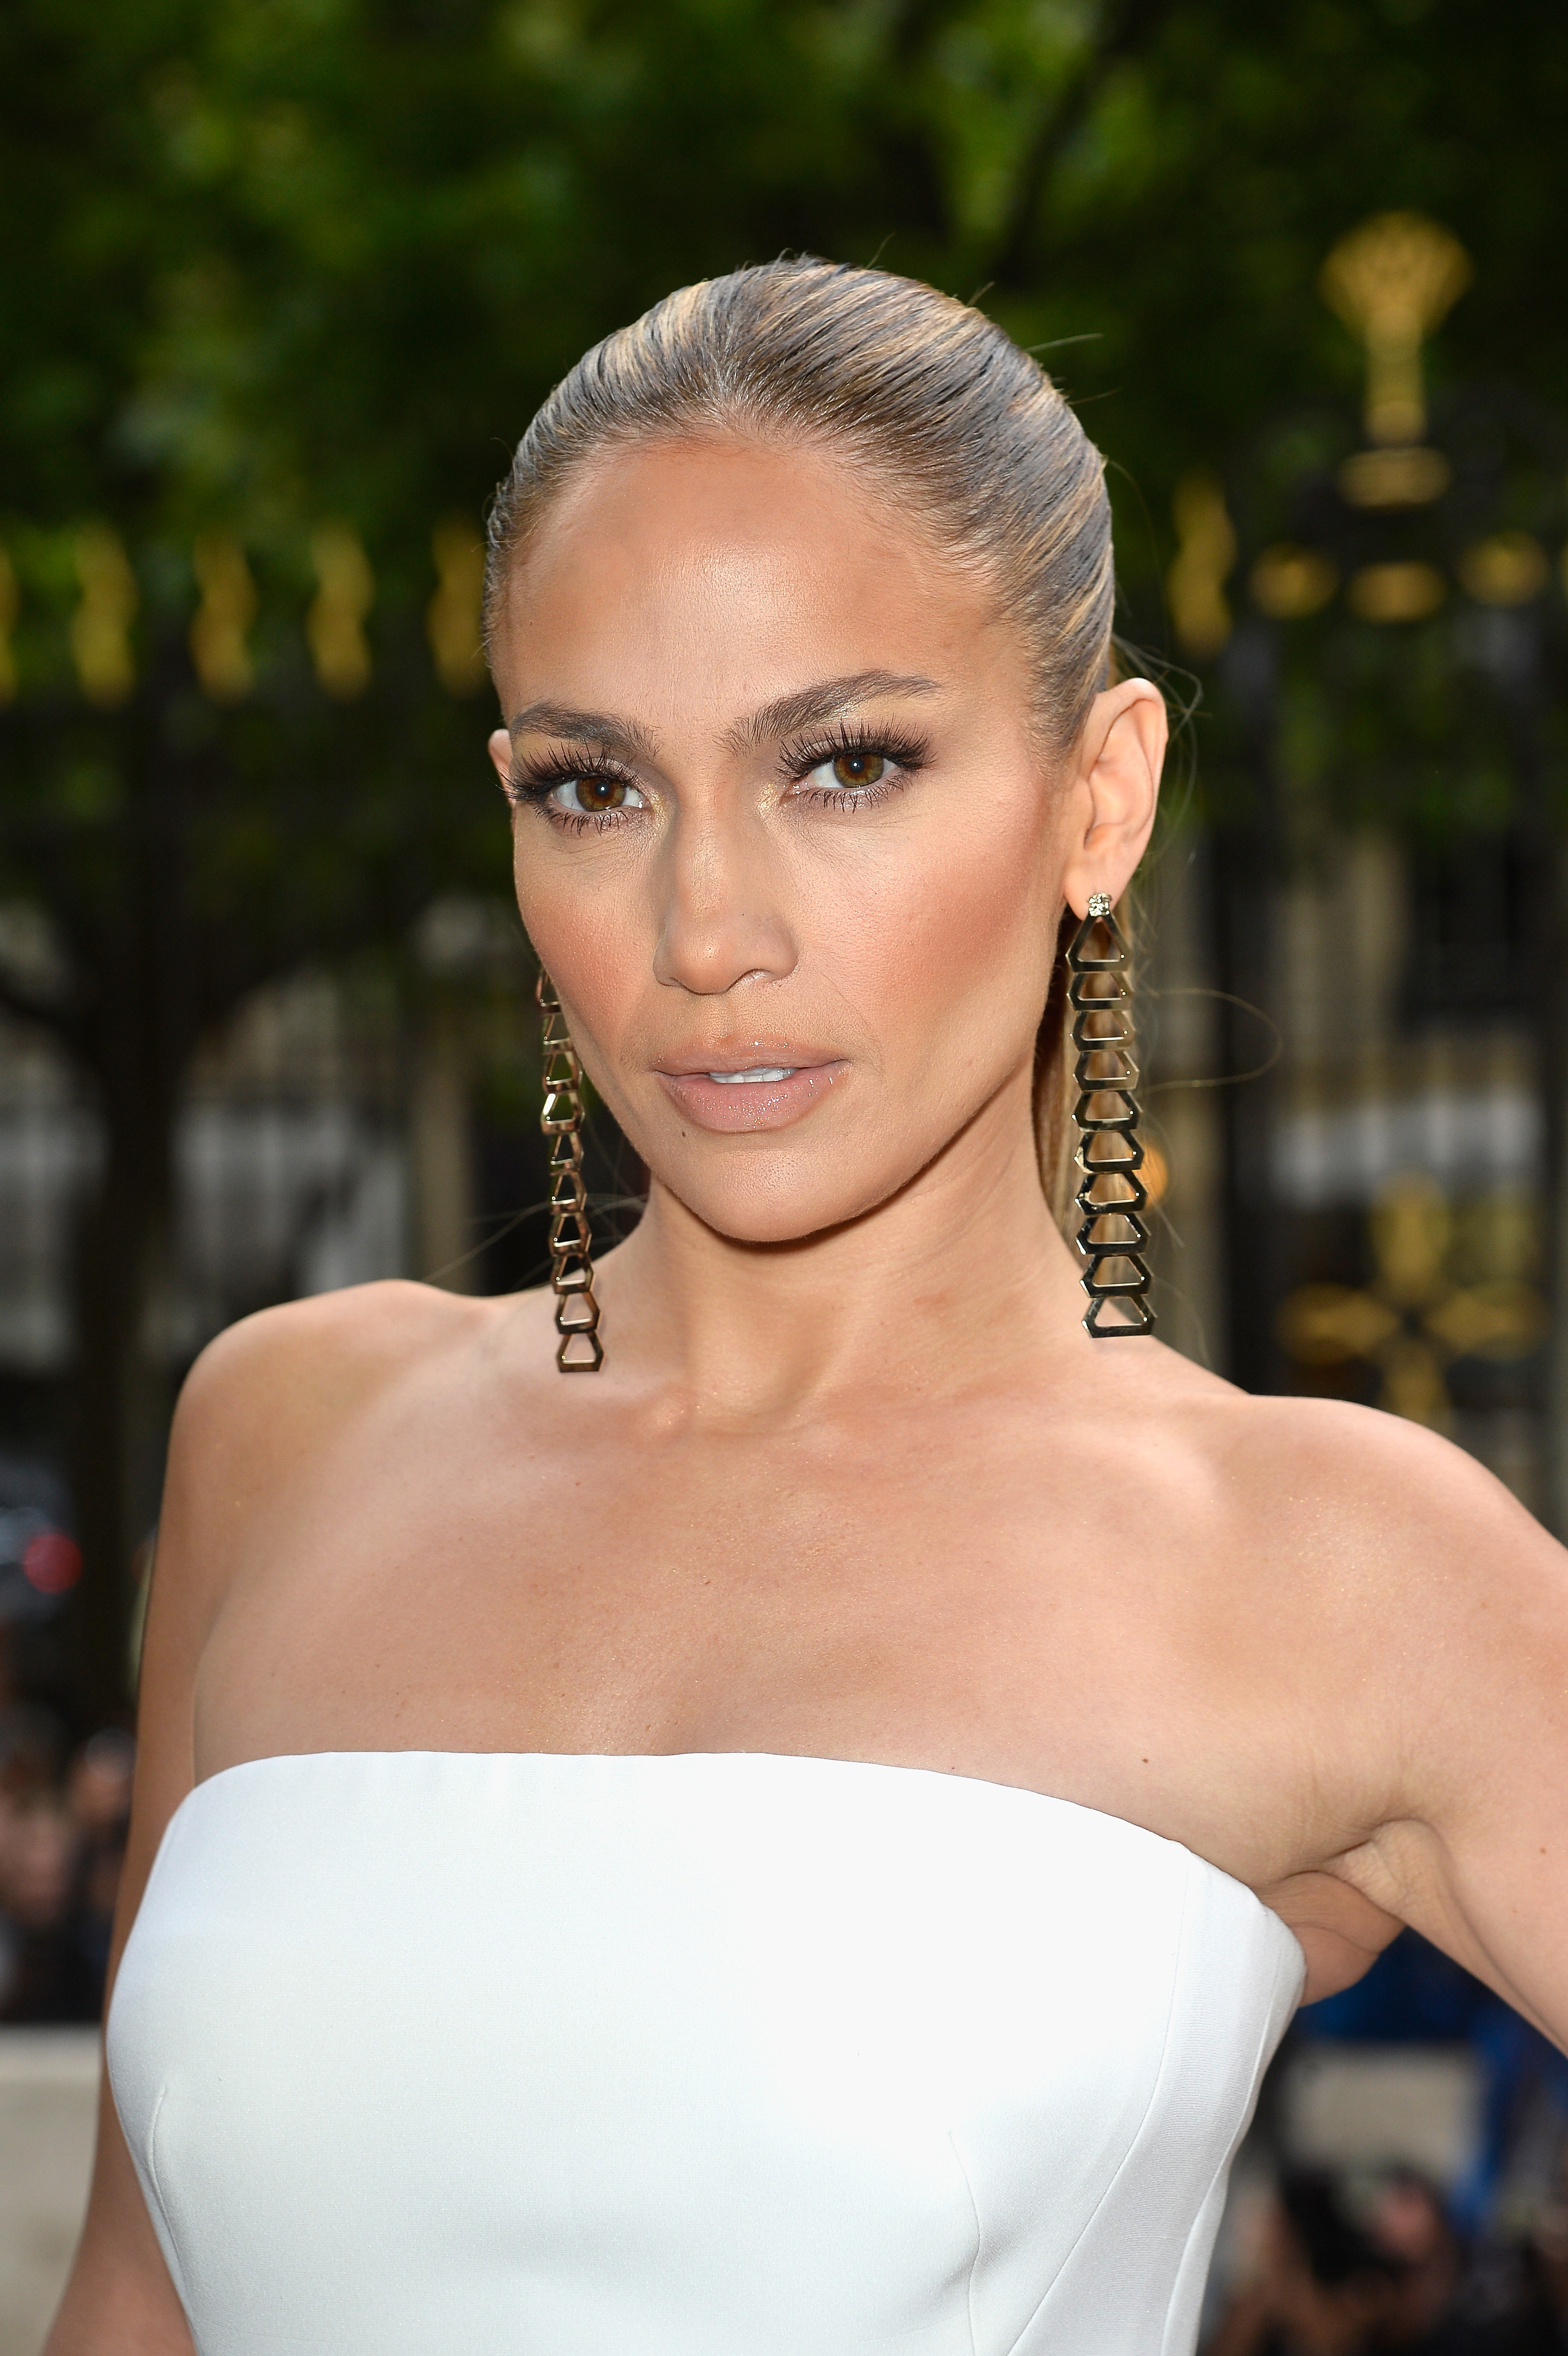 Jennifer Lopez attends the Versace show as part of Paris Fashion Week - Haute Couture Fall/Winter 2014-2015 on July 6, 2014 in Paris.